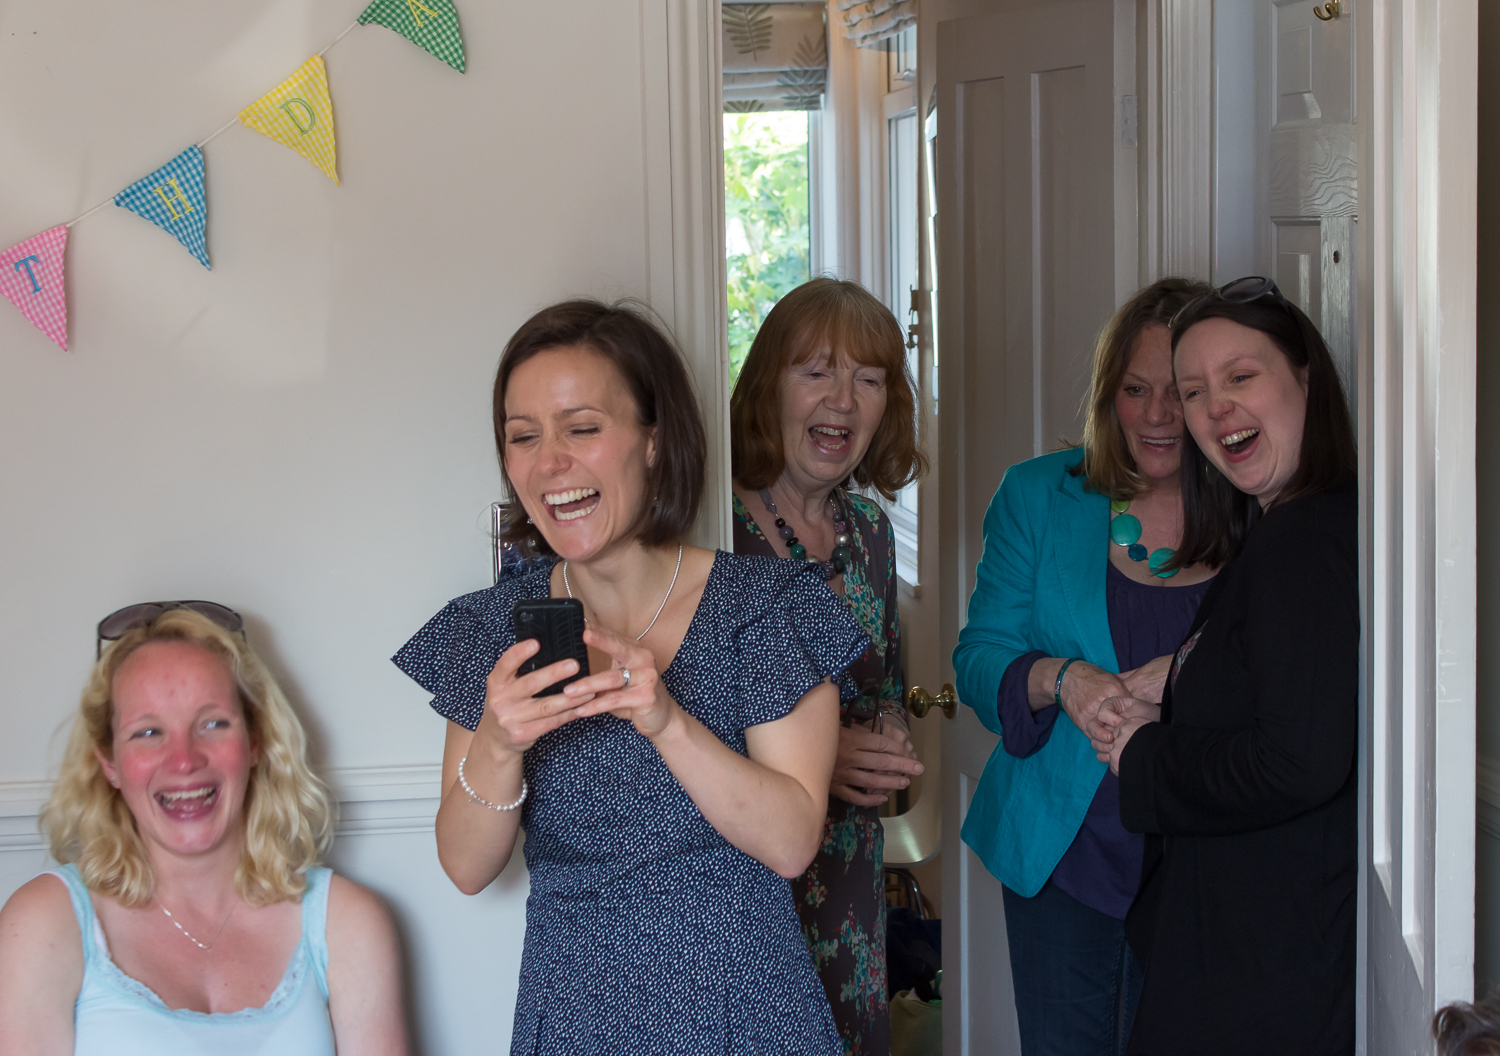 Family members crowd around the lounge door at a girls second birthday party, laughing away